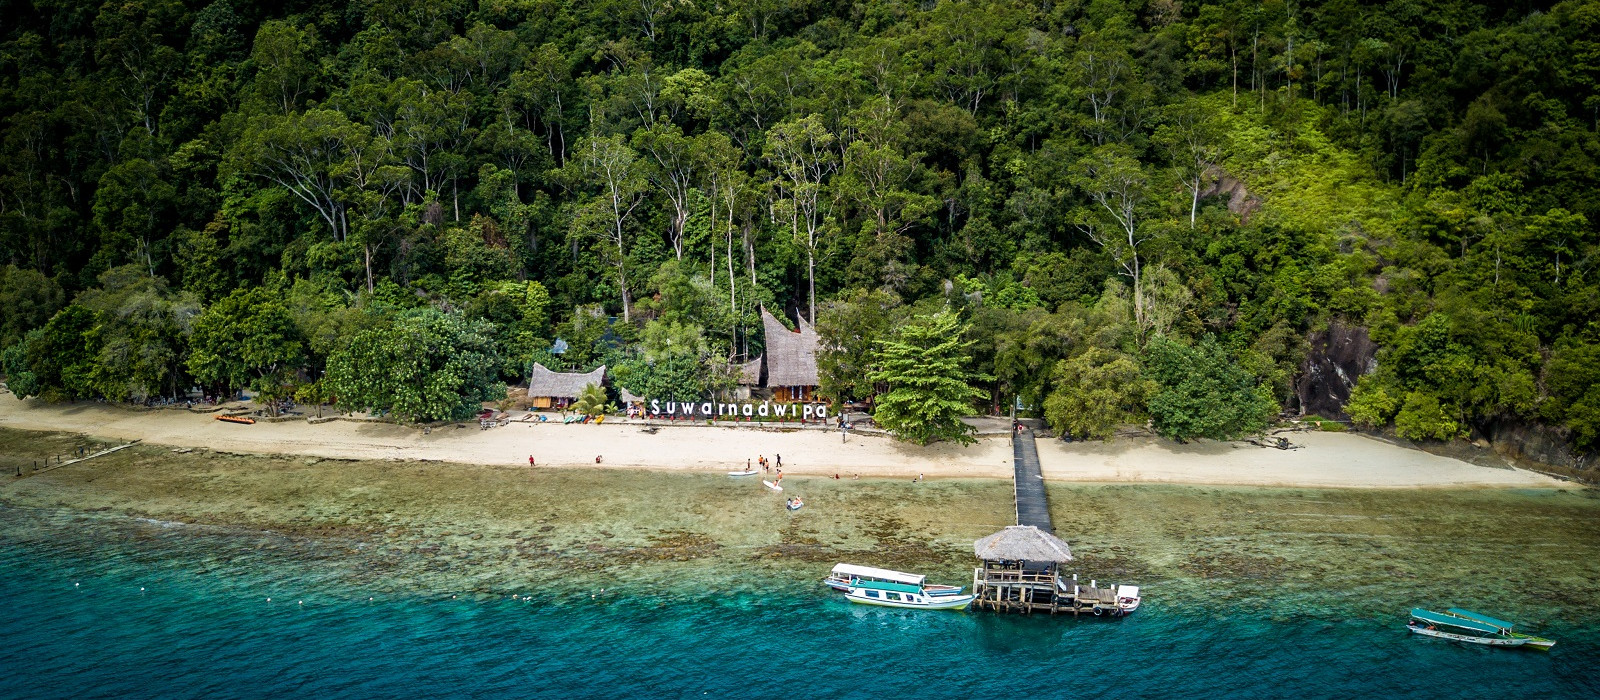 Best of Sulawesi and Sumatra Tour Trip 1